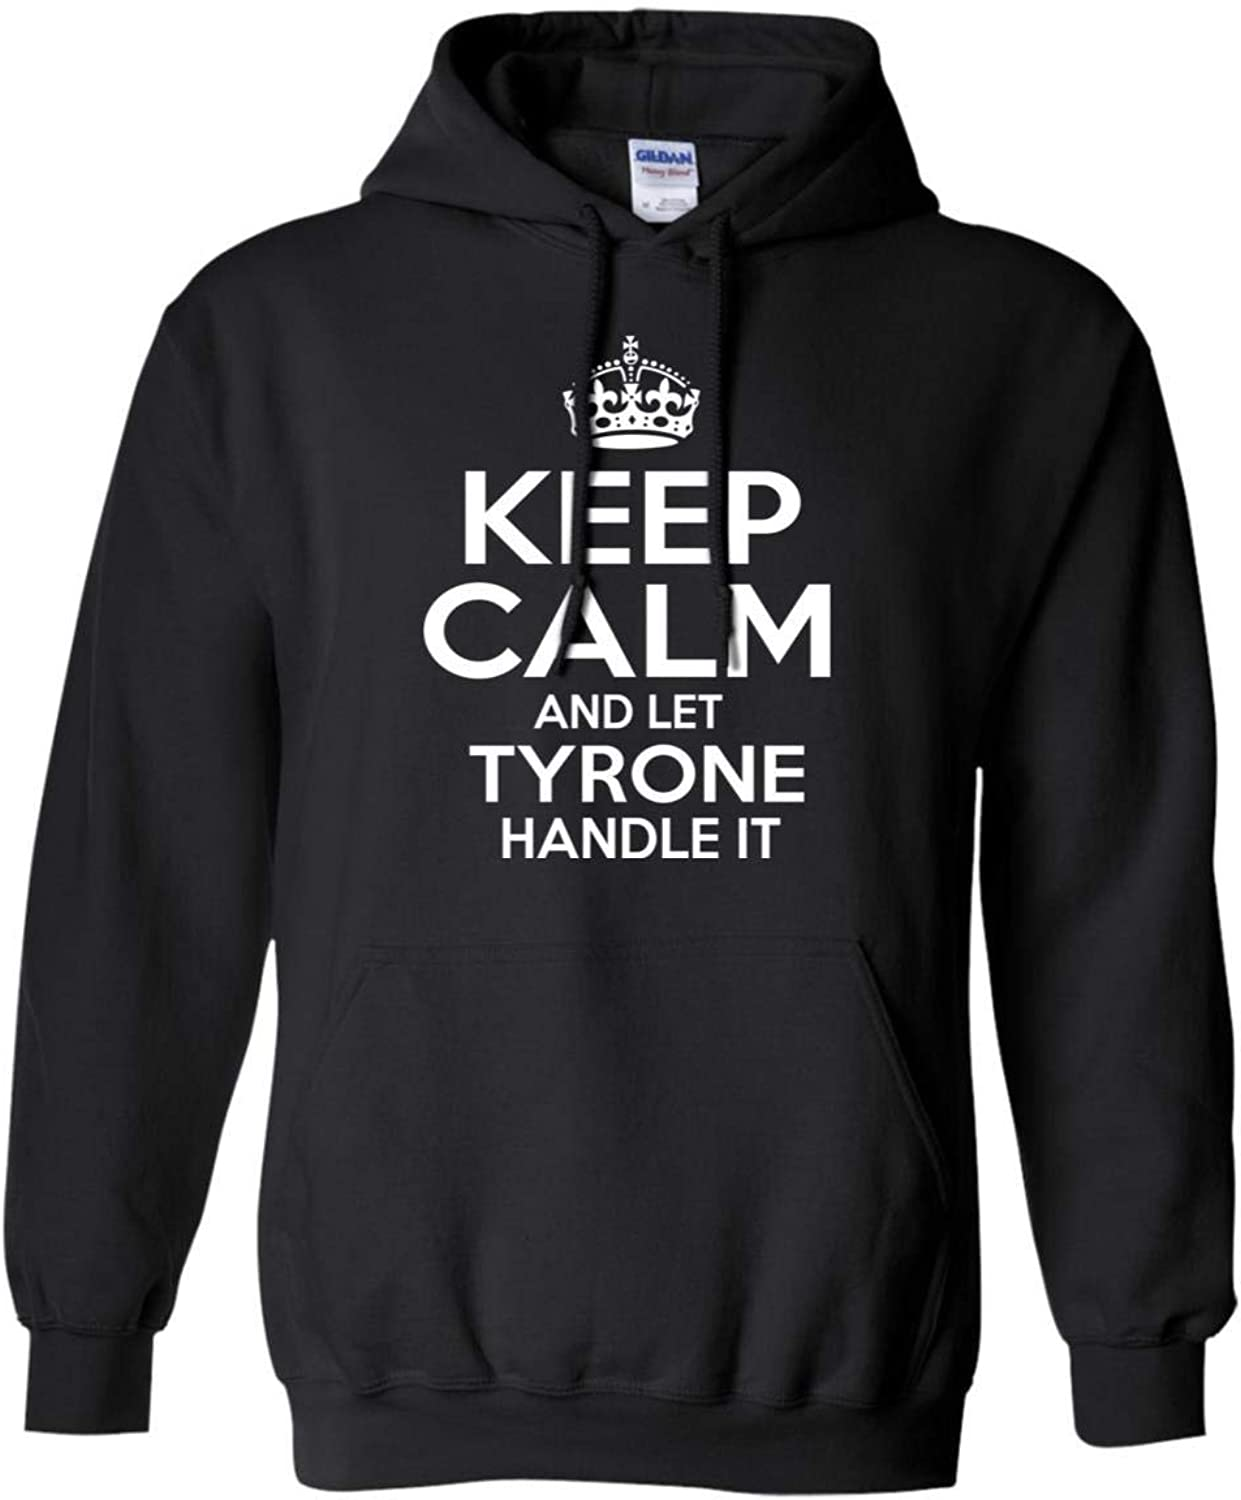 Tee Shine Keep Calm and Let Tyrone Handle It Sweatshirt Personalized Name Christmas, Birthday Gifts Ideas Black, Navy S-5XL